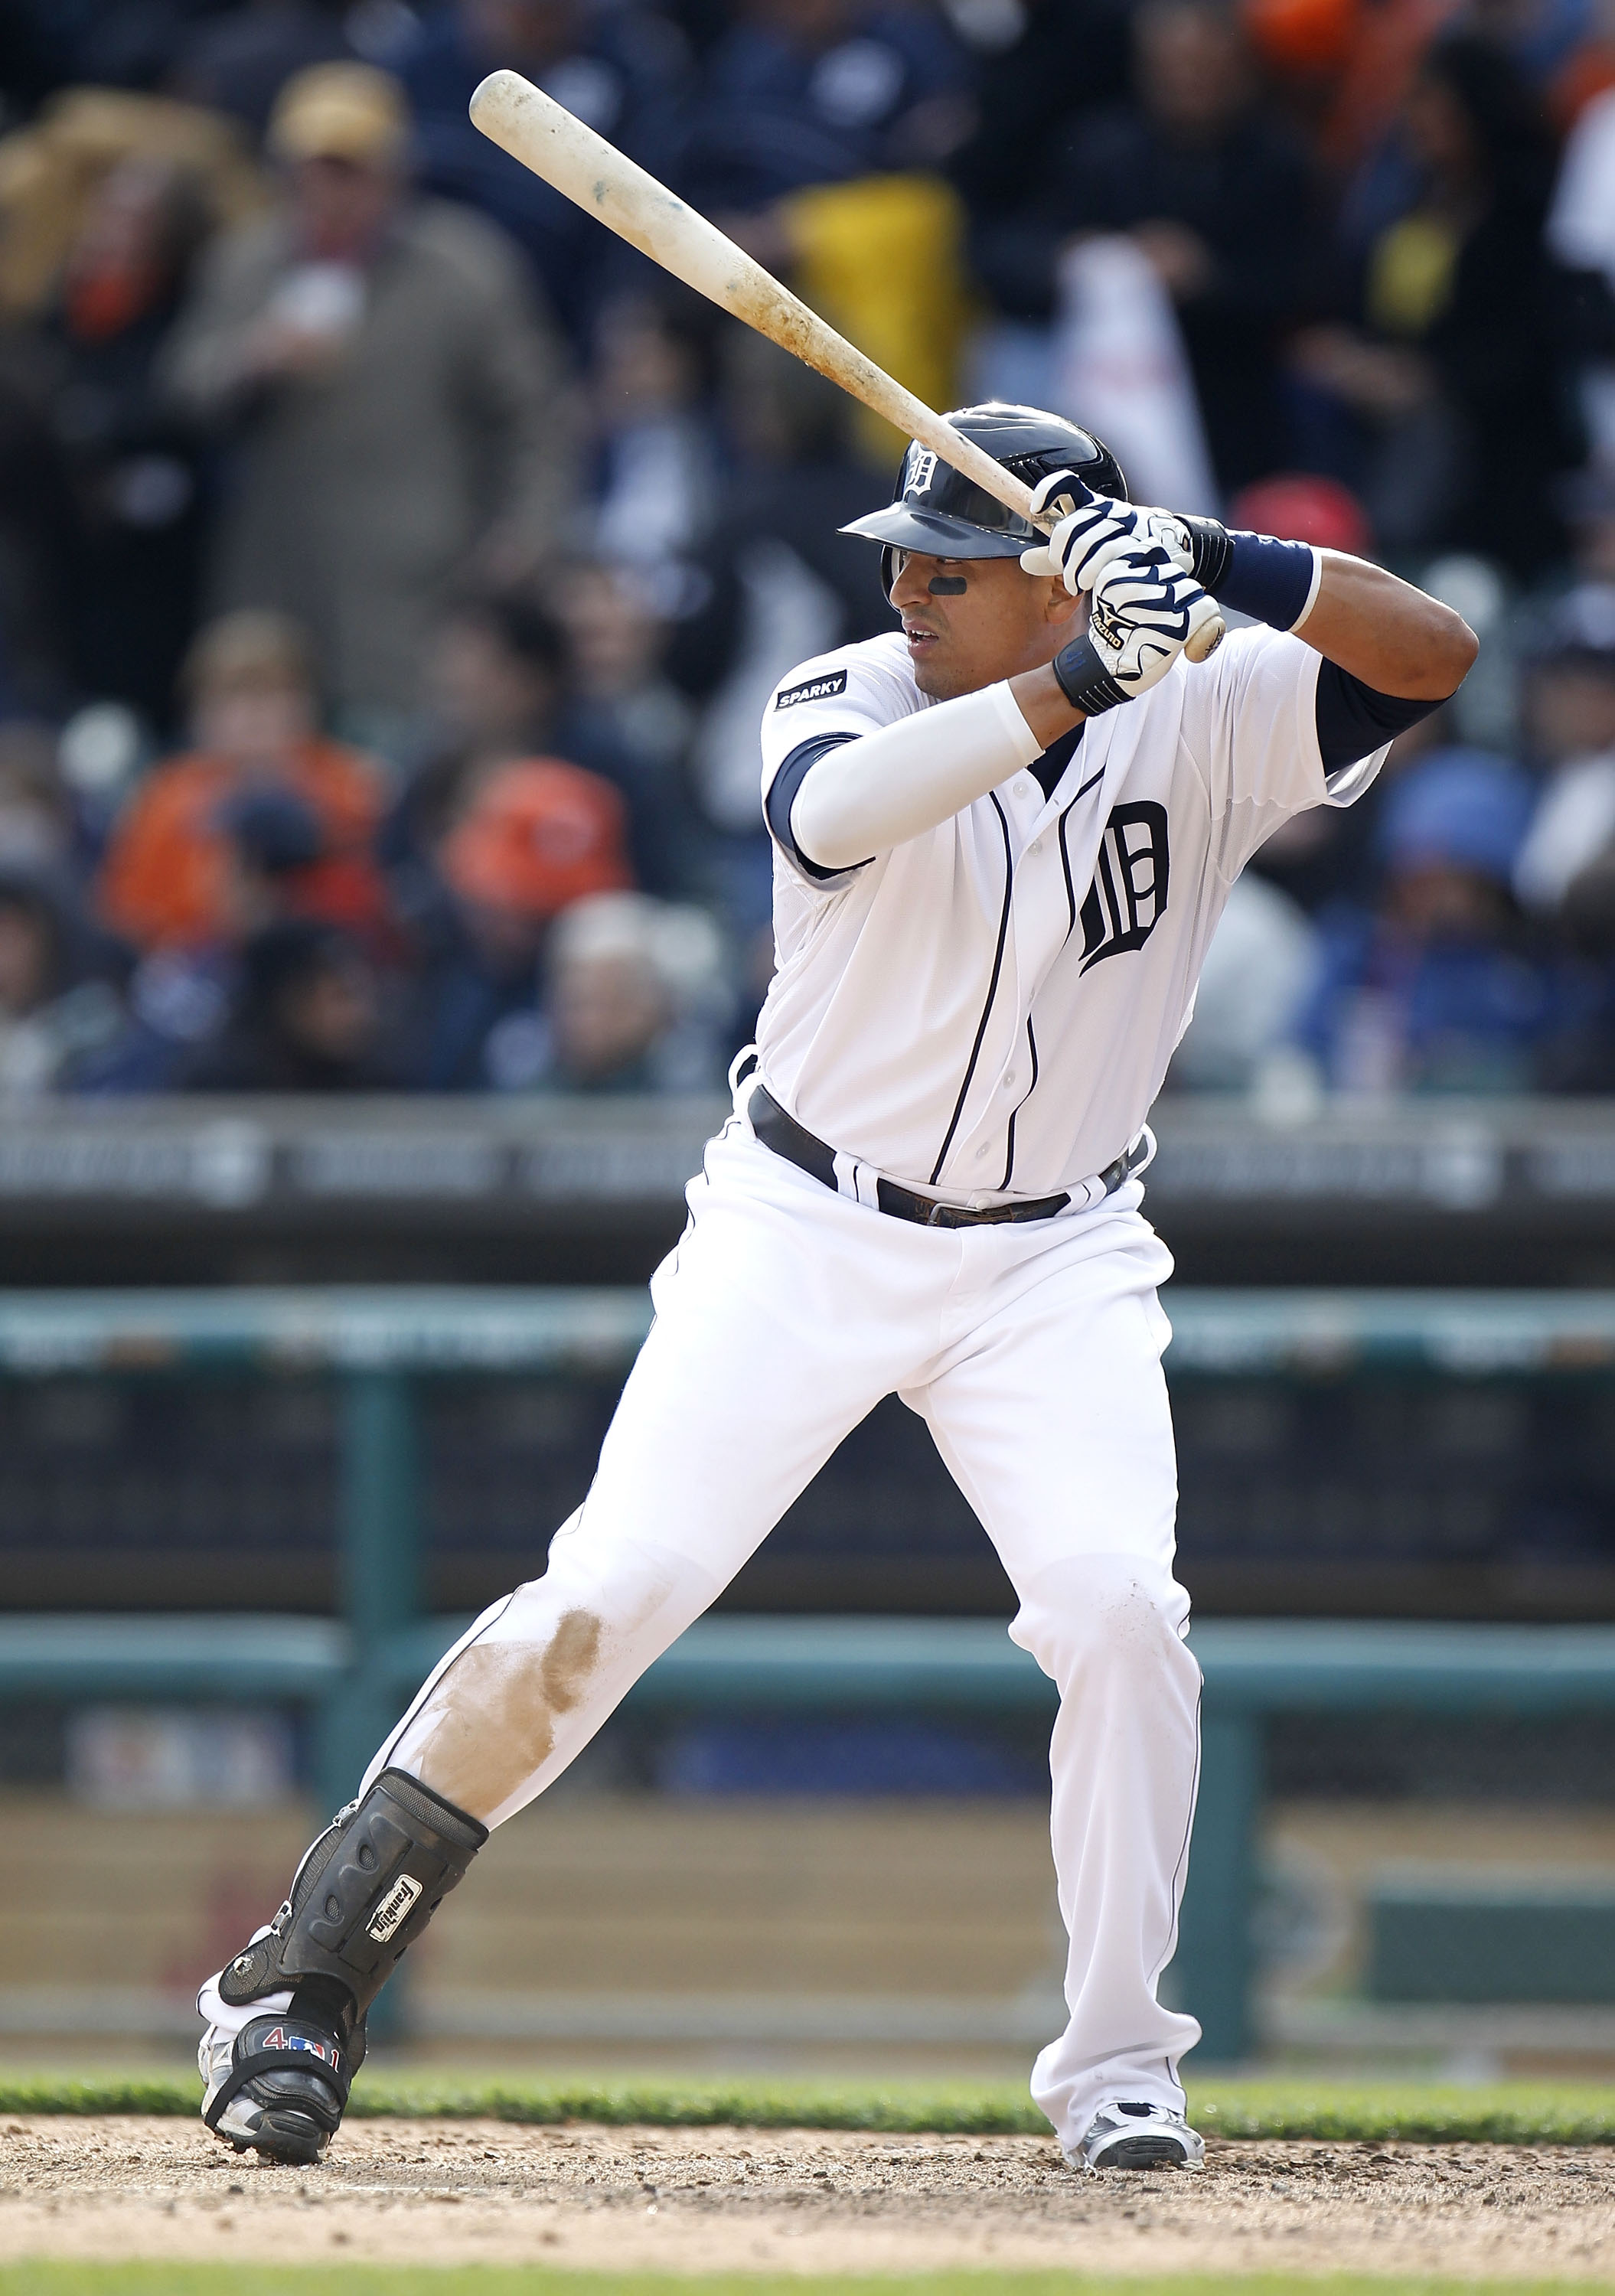 DETROIT, MI - APRIL 08:  Victor Martinez #41 of the Detroit Tigers bats in the seventh inning while playing the Kansas City Royals during Opening Day at Comerica Park on April 8, 2011 in Detroit, Michigan. Detroit won the game 5-2.  (Photo by Gregory Sham